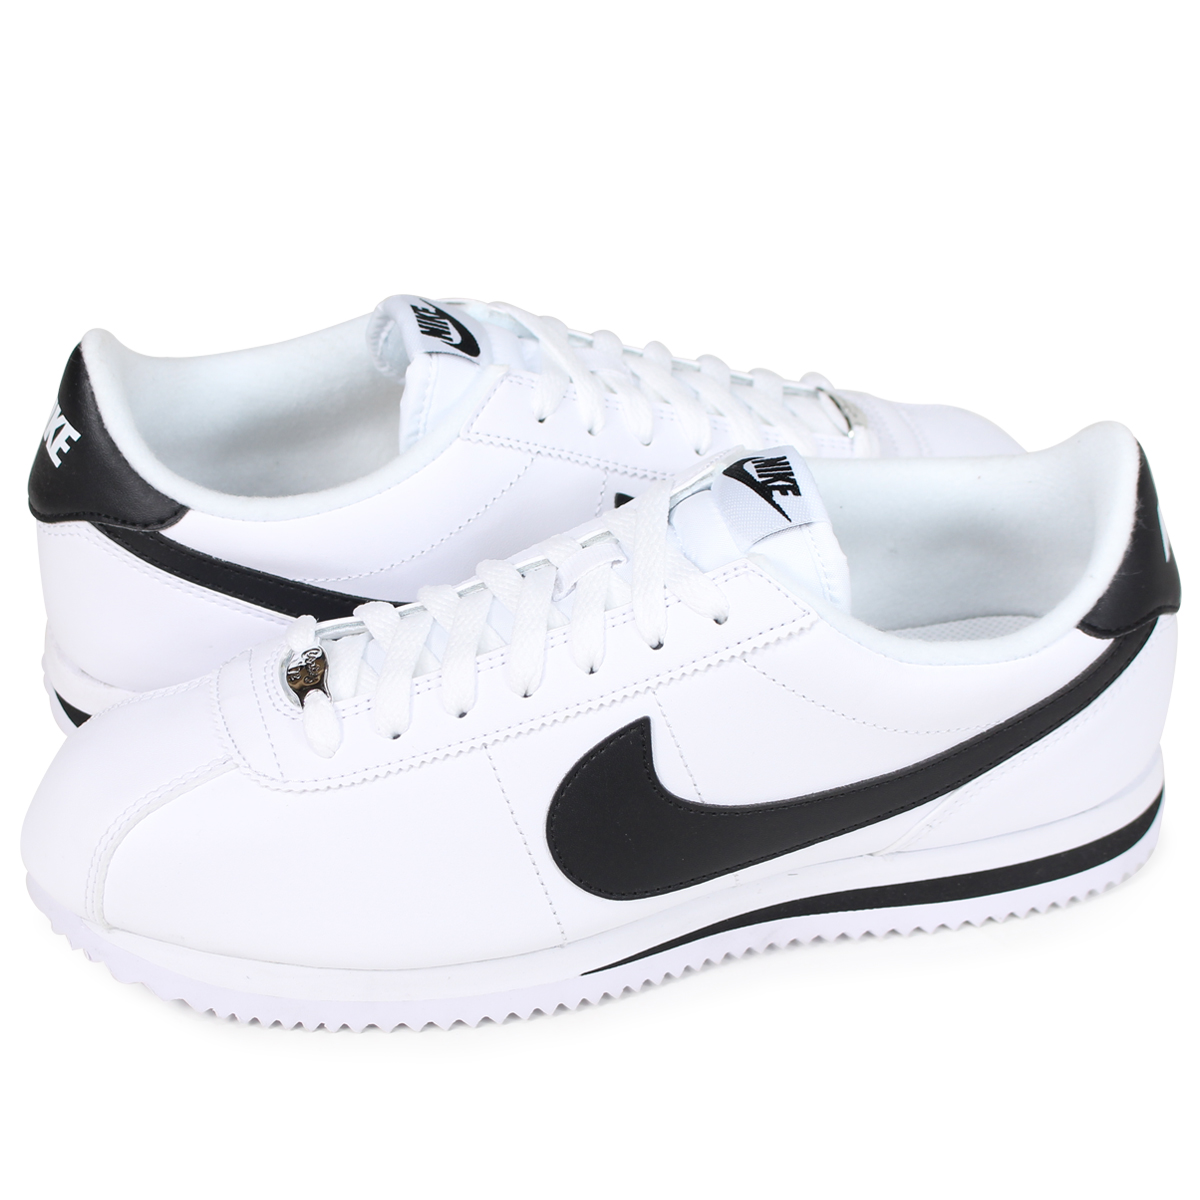 promo code d4110 25198 NIKE Nike Cortez sneakers CORTEZ BASIC LEATHER 819719-100 mens shoes white